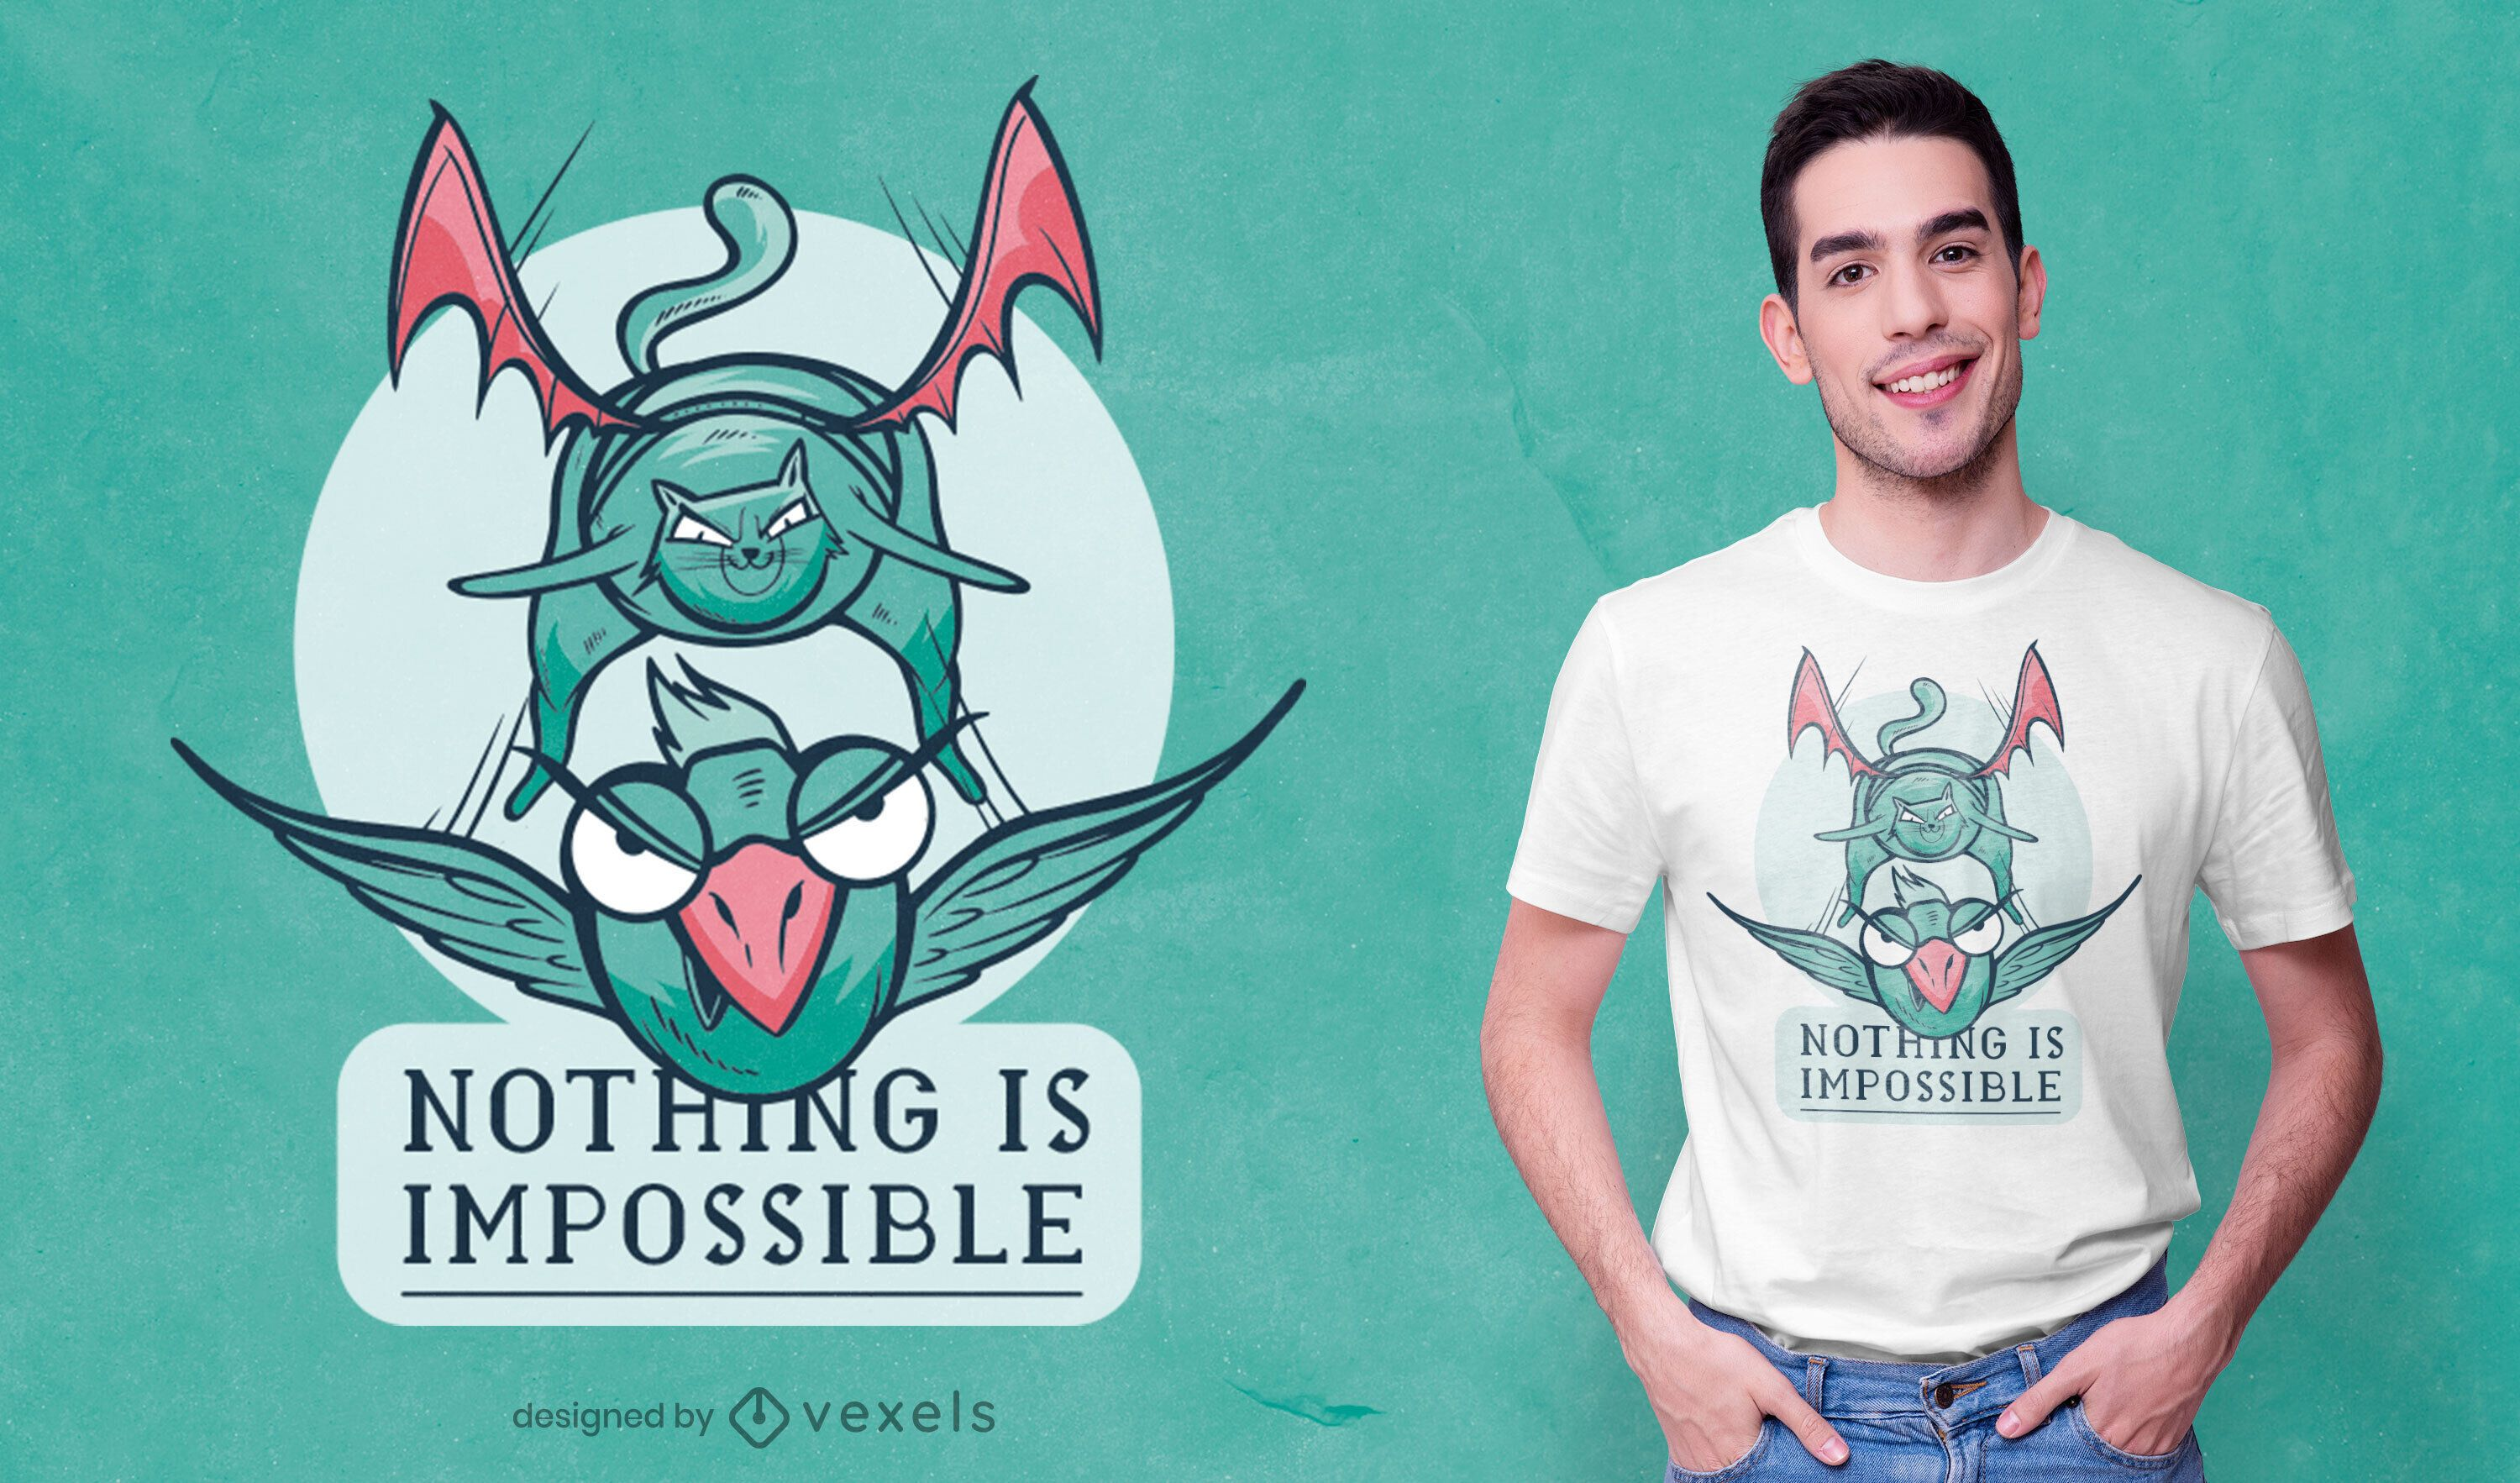 Nothing is impossible t-shirt design